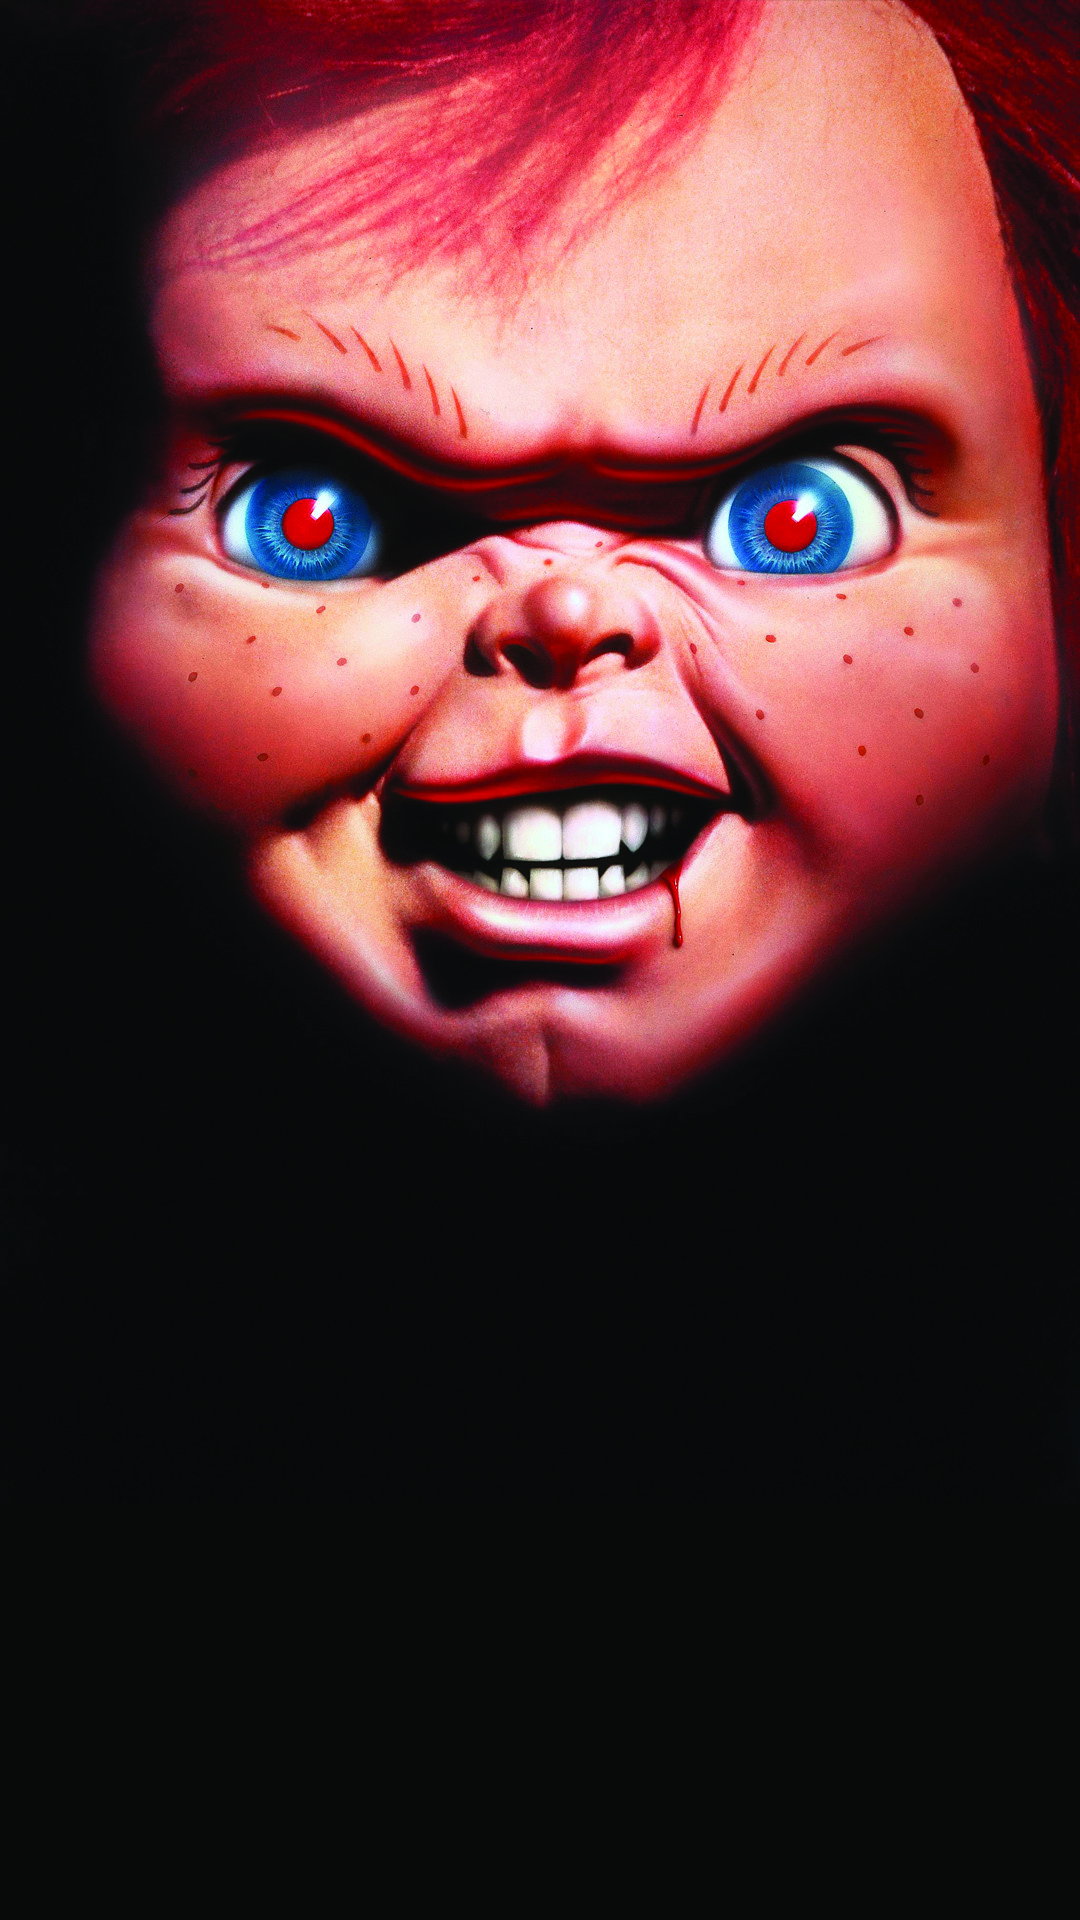 Chucky Scary Doll Android Wallpaper …